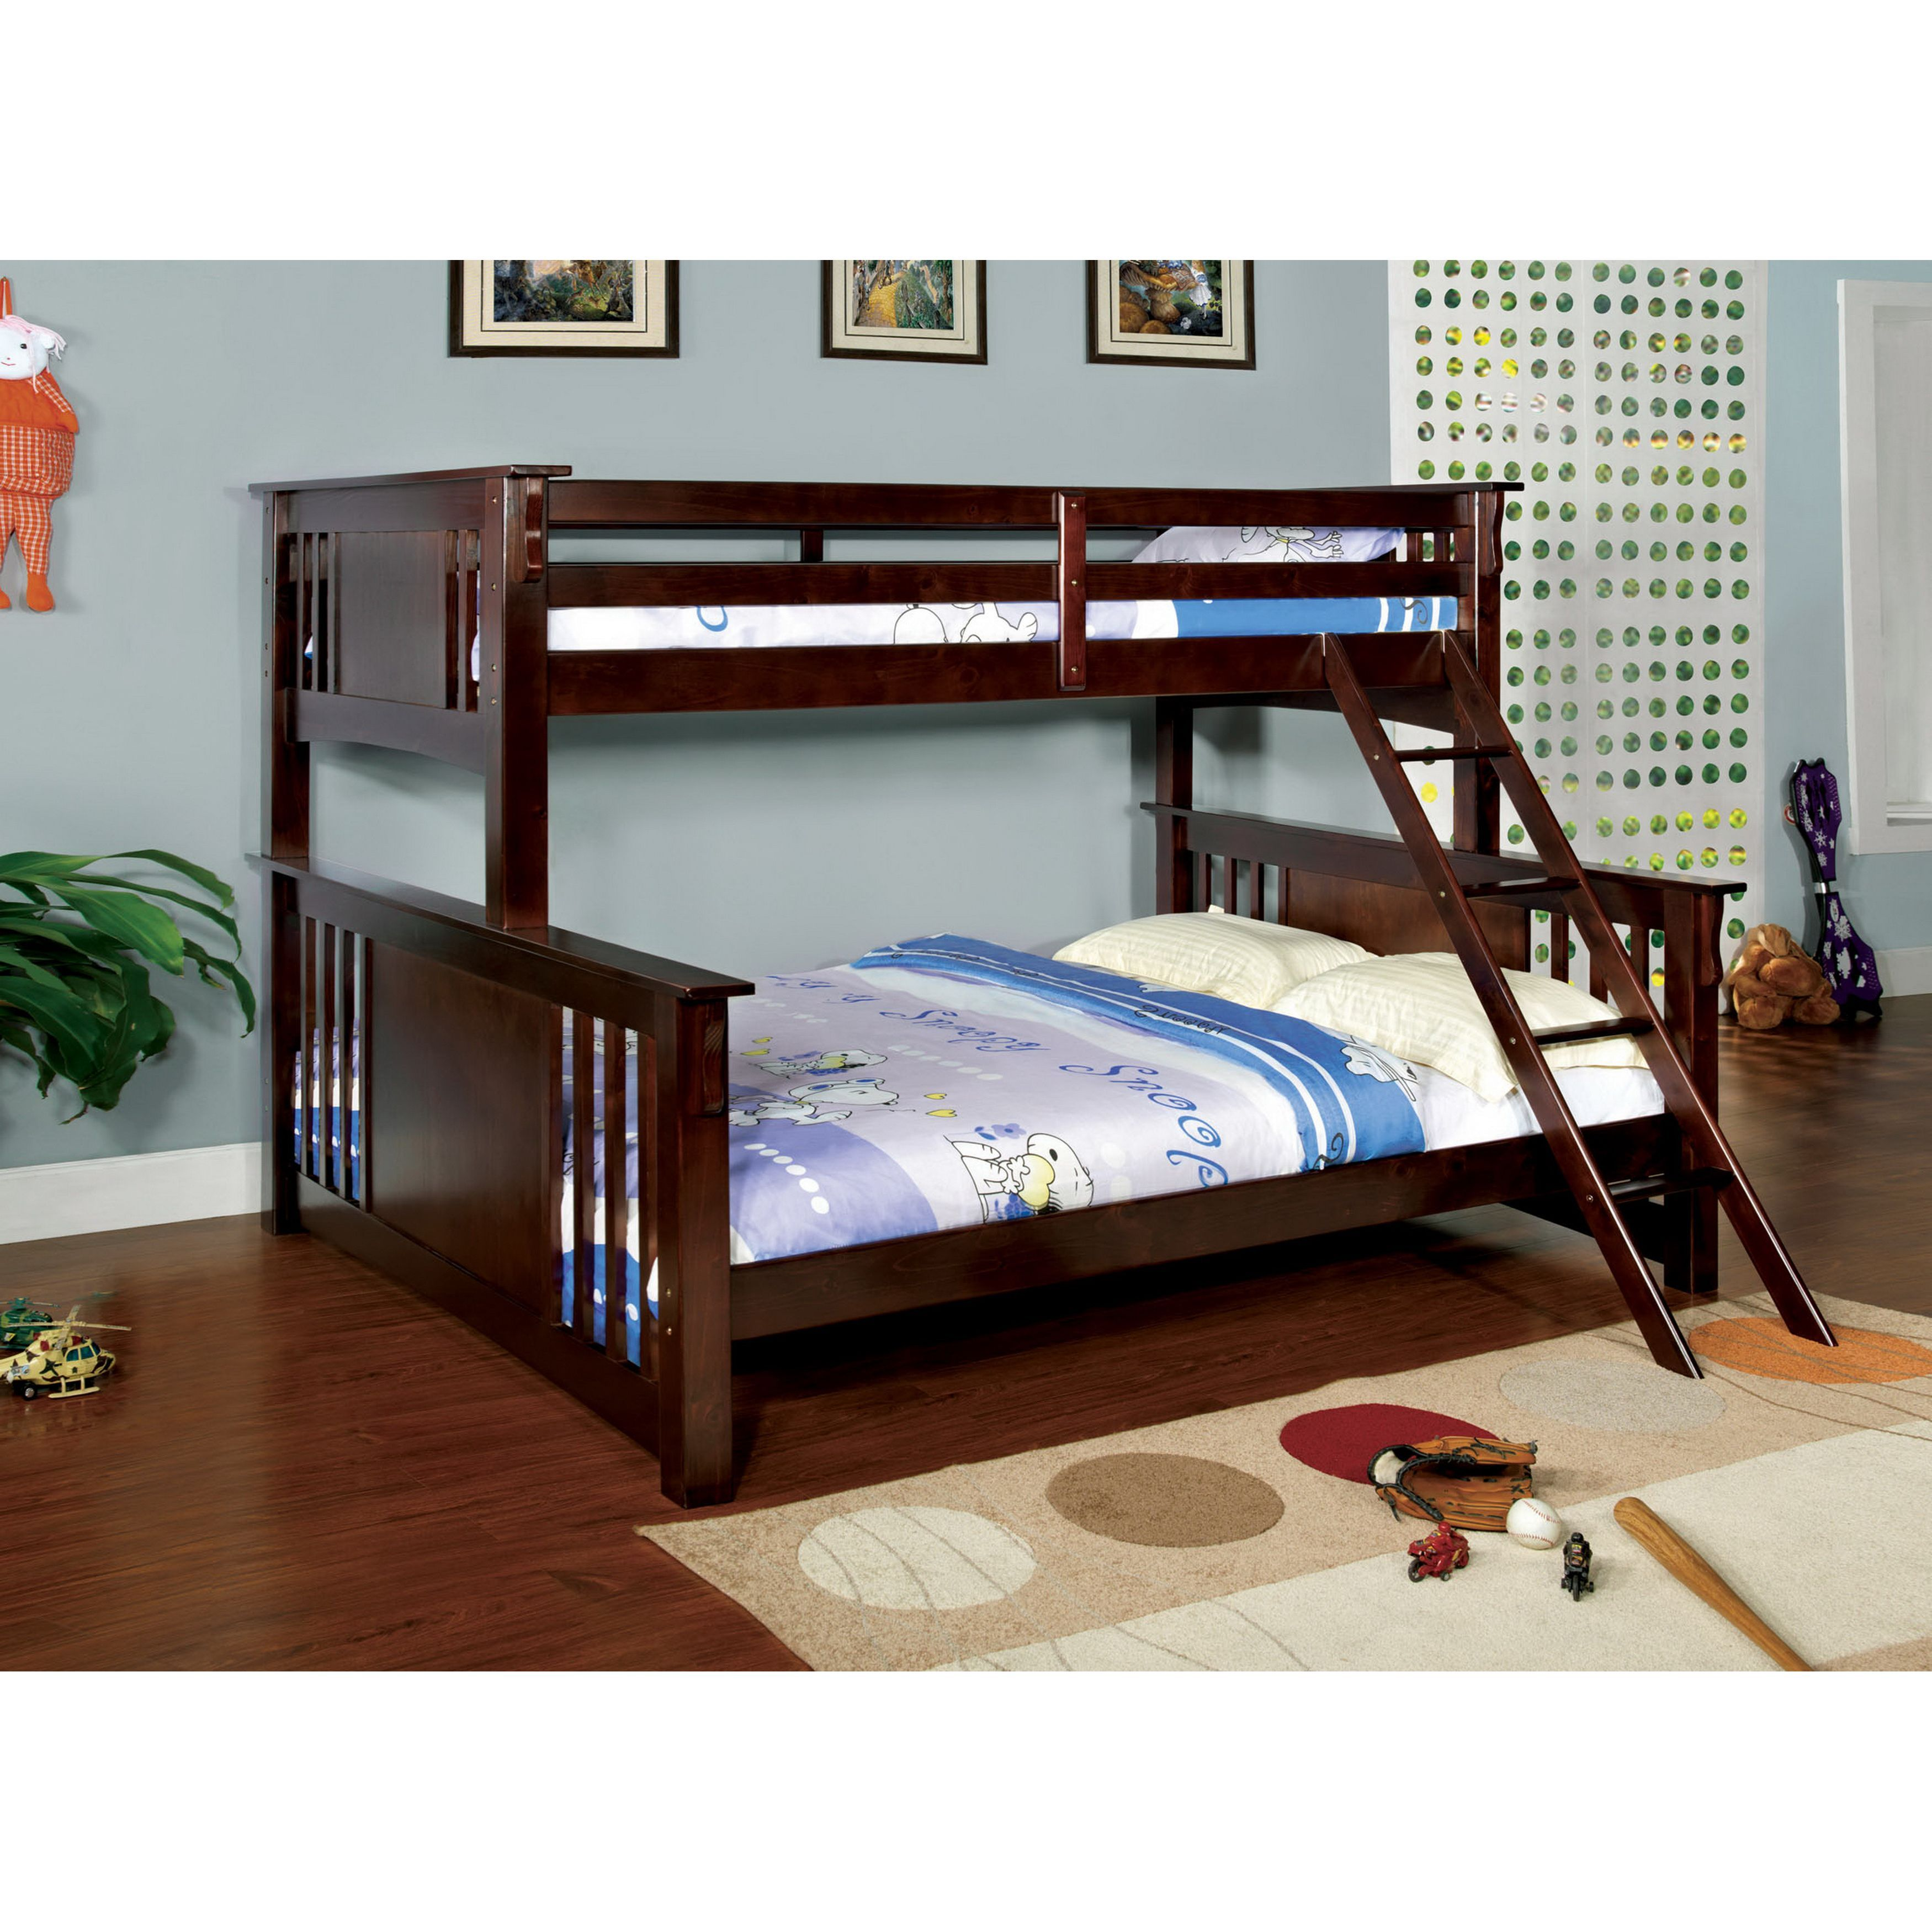 Queen size loft bed with stairs  Enhance your sleep space with this modern wooden twin over queen